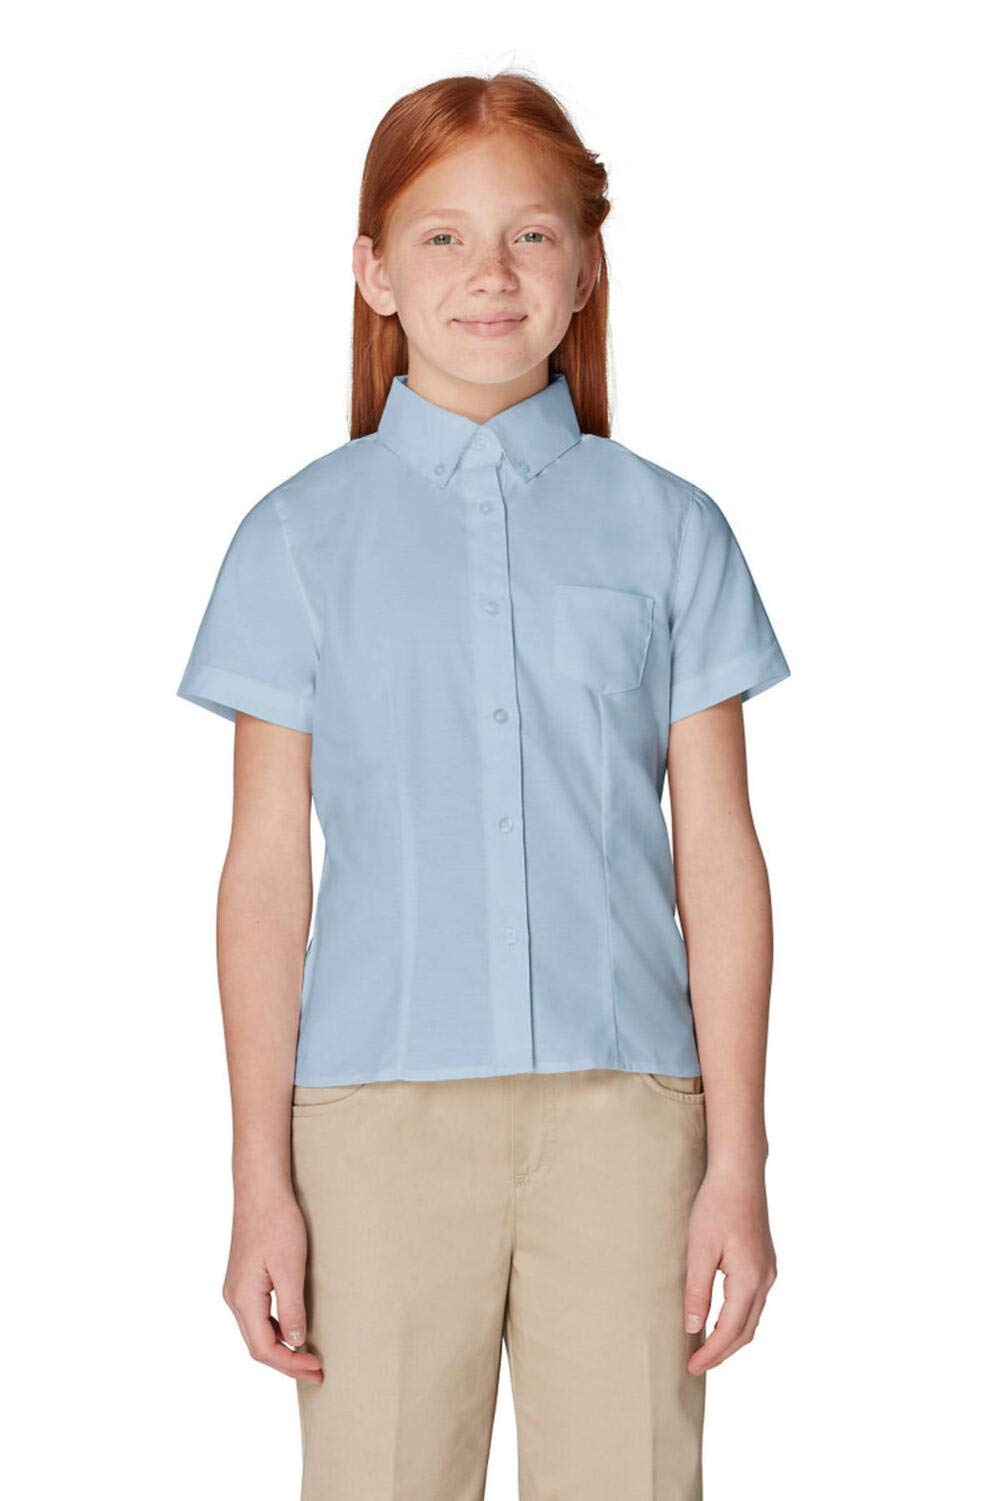 French Toast Big Girls' Short Sleeve Button Down Oxford with Darts, Light Blue, 10